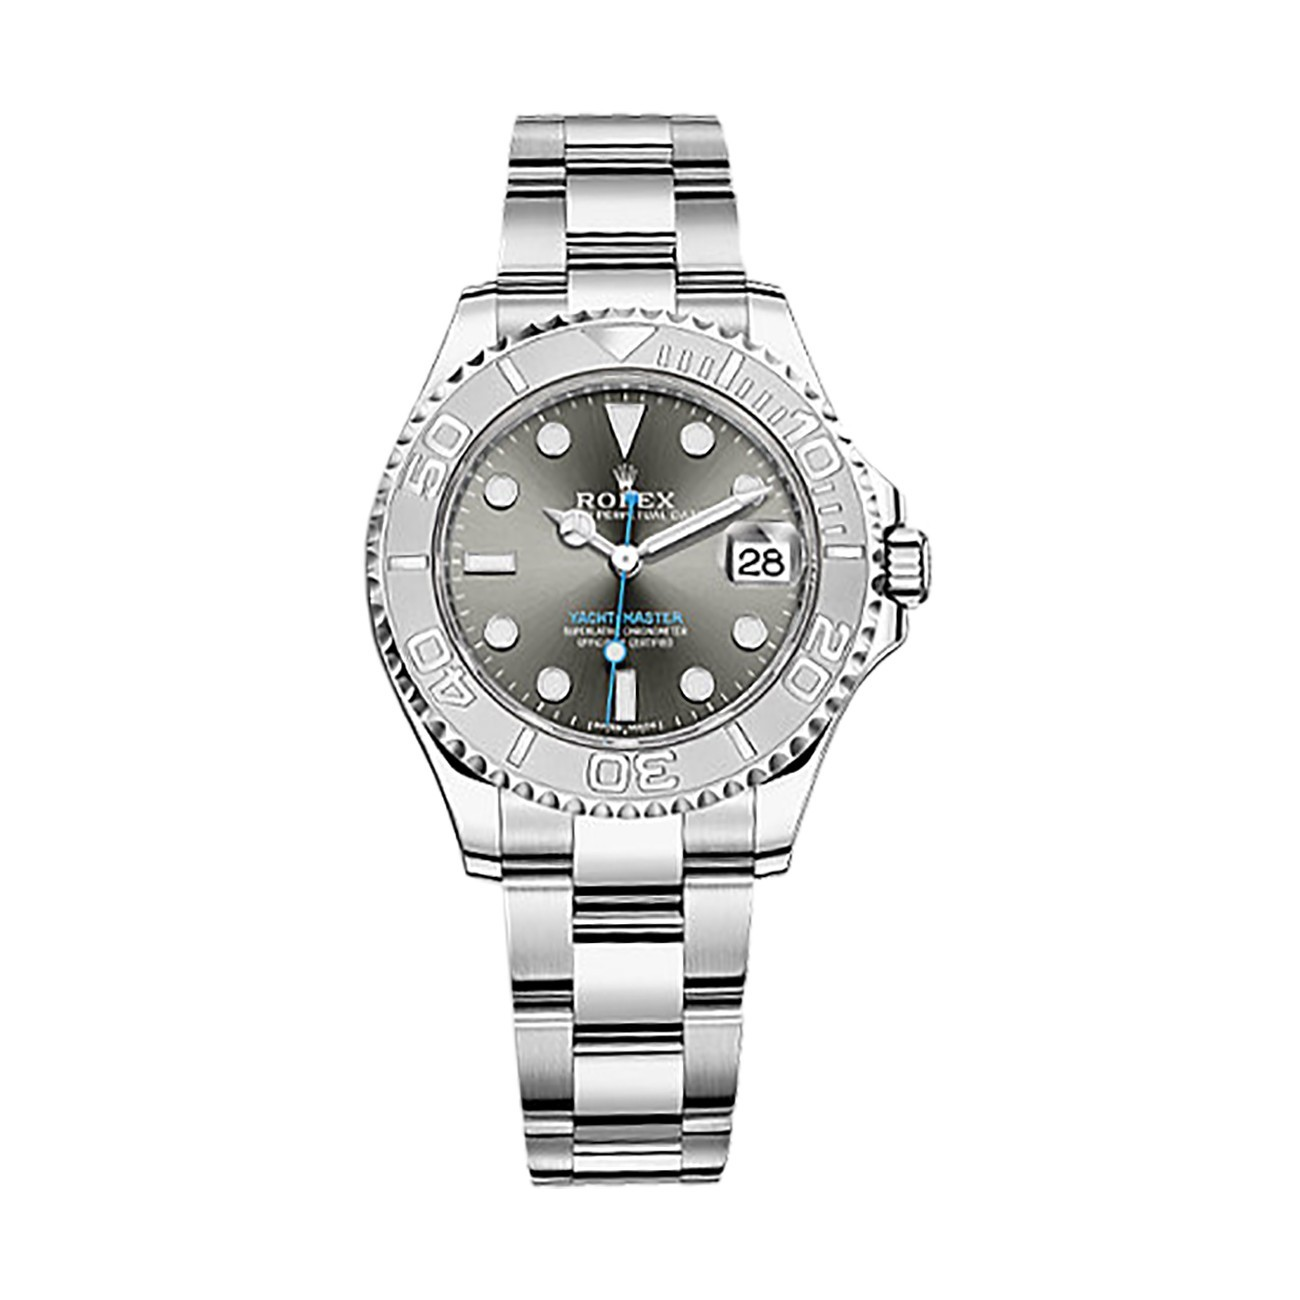 Rolex Unworn Yacht Master 37mm in Steel with Platinum Bezel